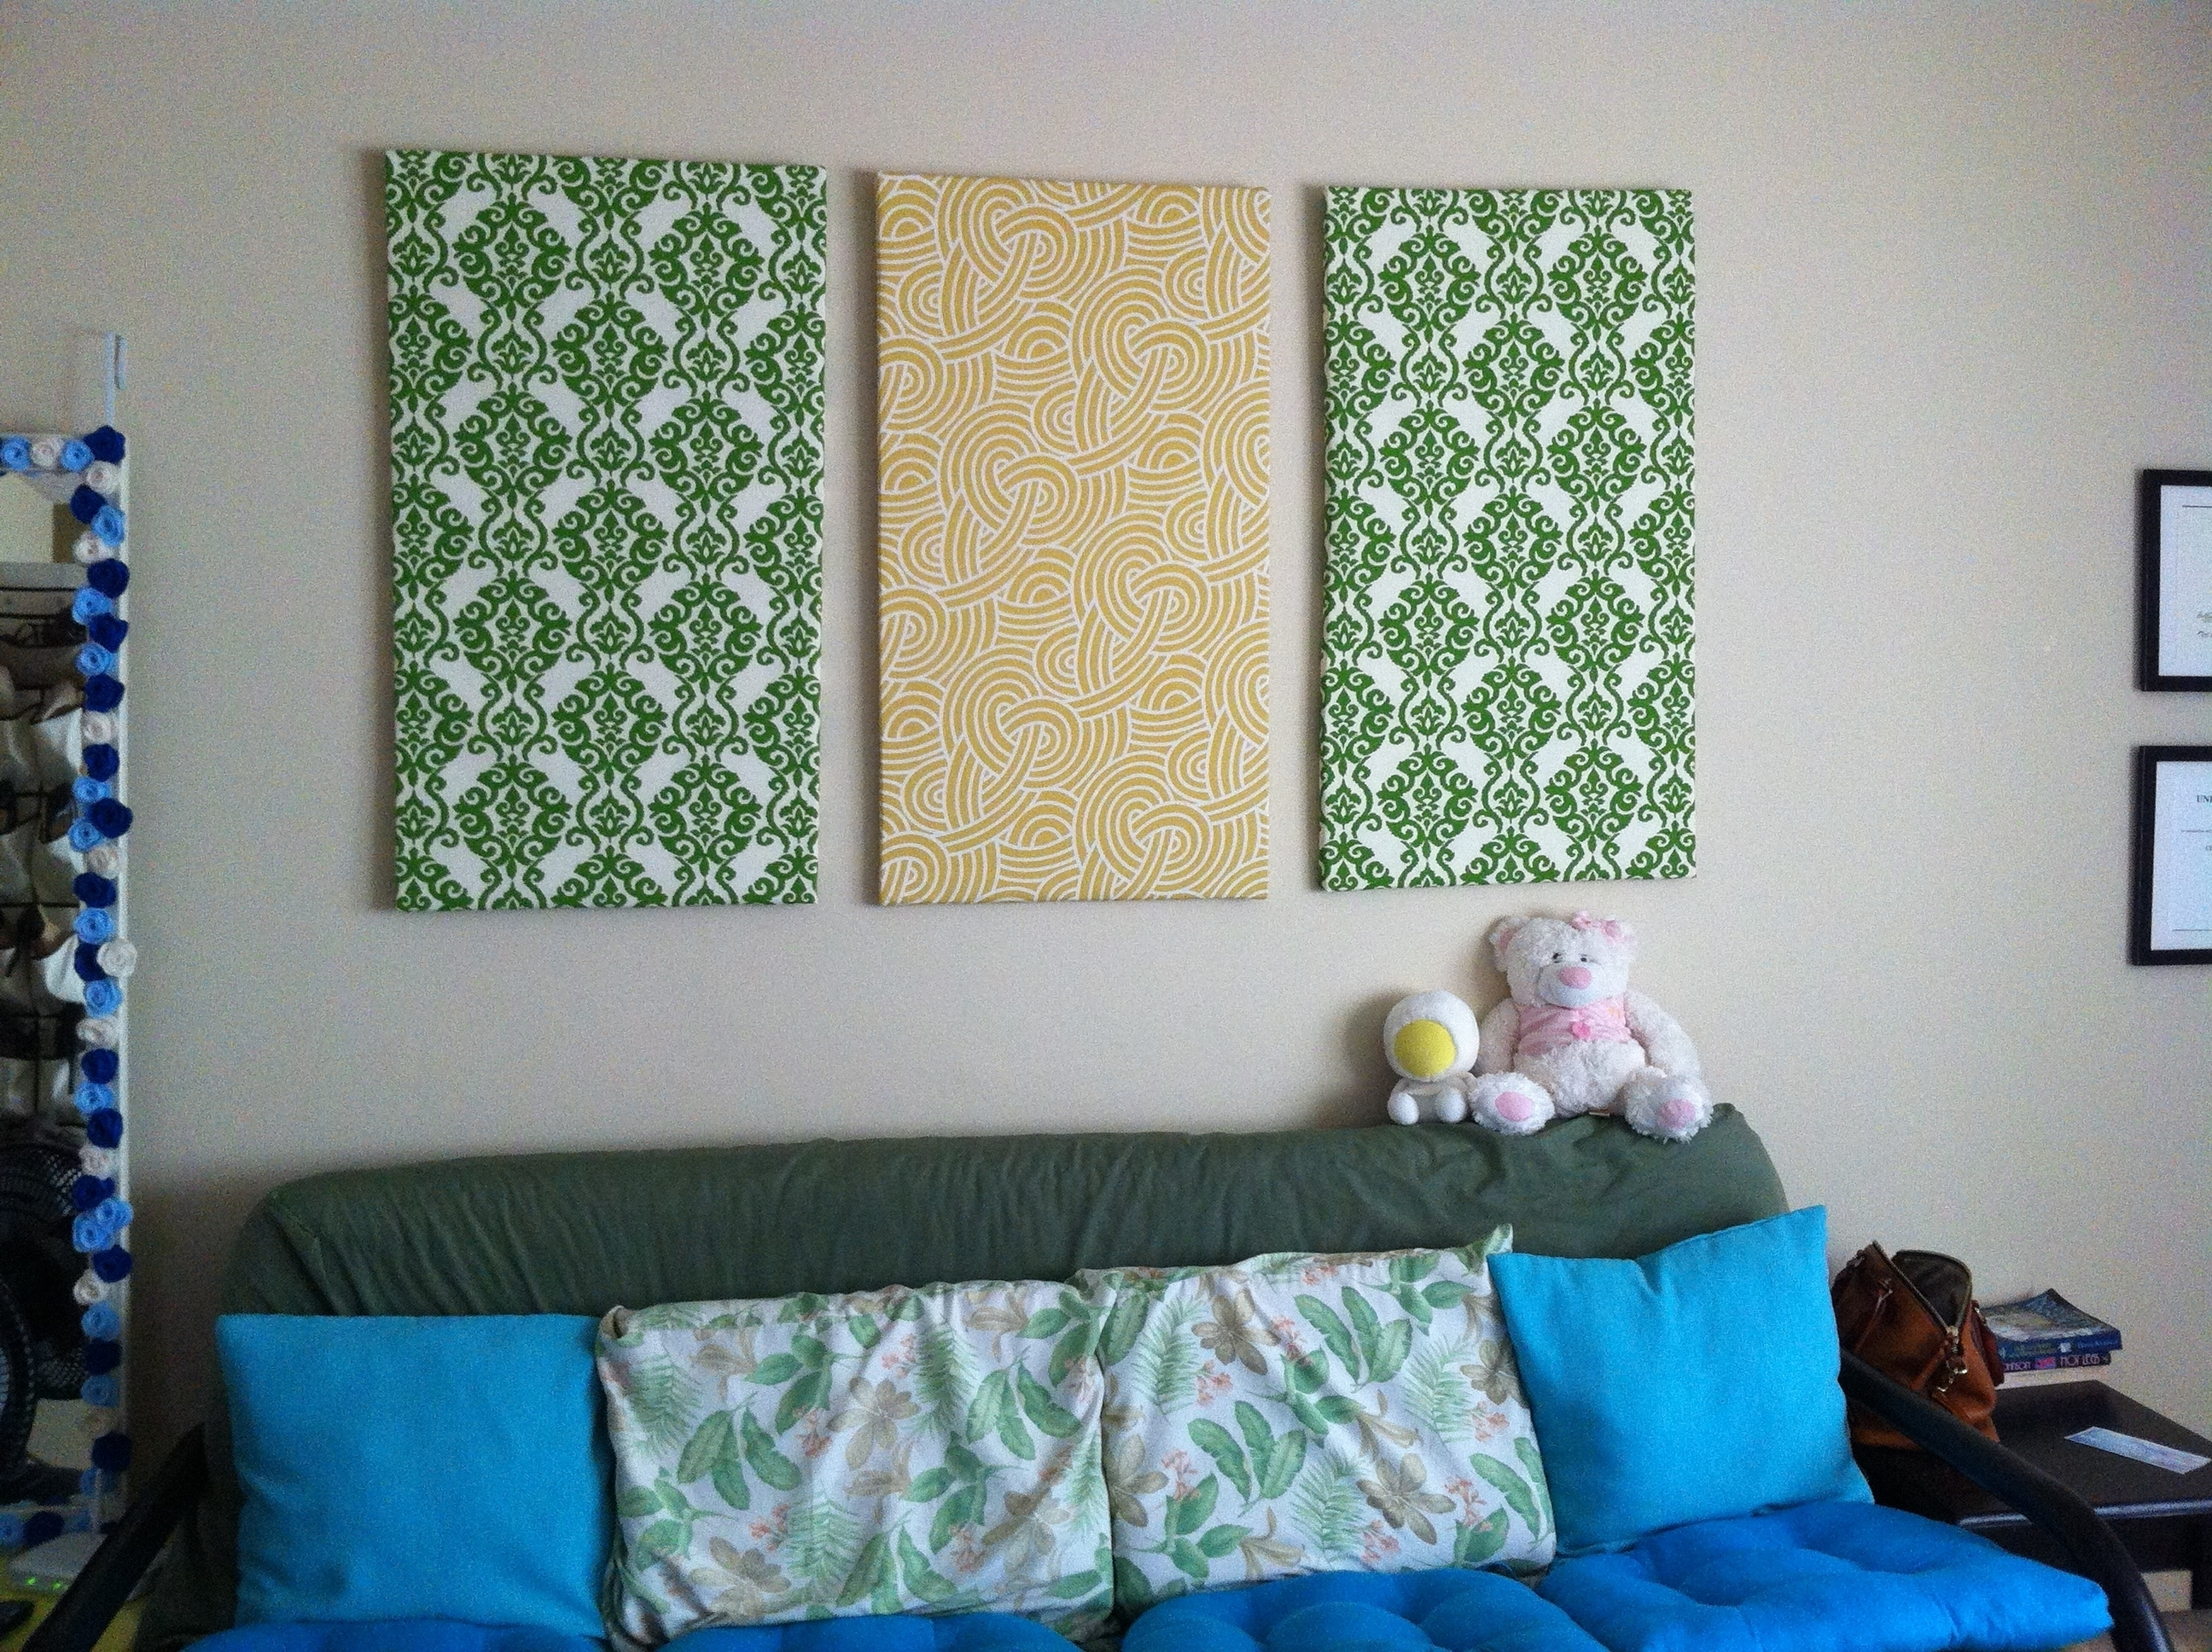 Diy Bedroom Wall Art — The Home Redesign : Some Kind Diy Wall Art With Regard To Most Recently Released Bedroom Fabric Wall Art (Gallery 12 of 15)